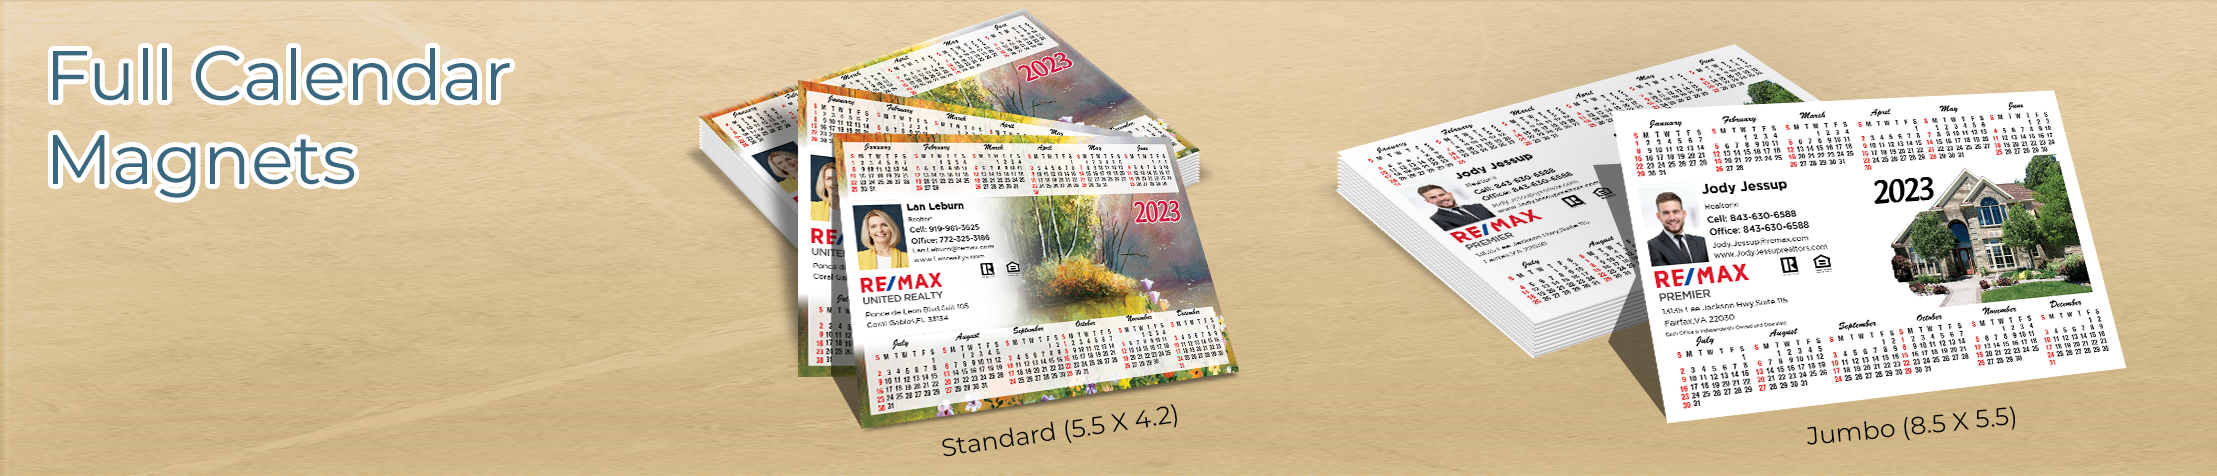 RE/MAX Real Estate Full Calendar Magnets - RE/MAX 2019 calendars in Standard or Jumbo Size | BestPrintBuy.com